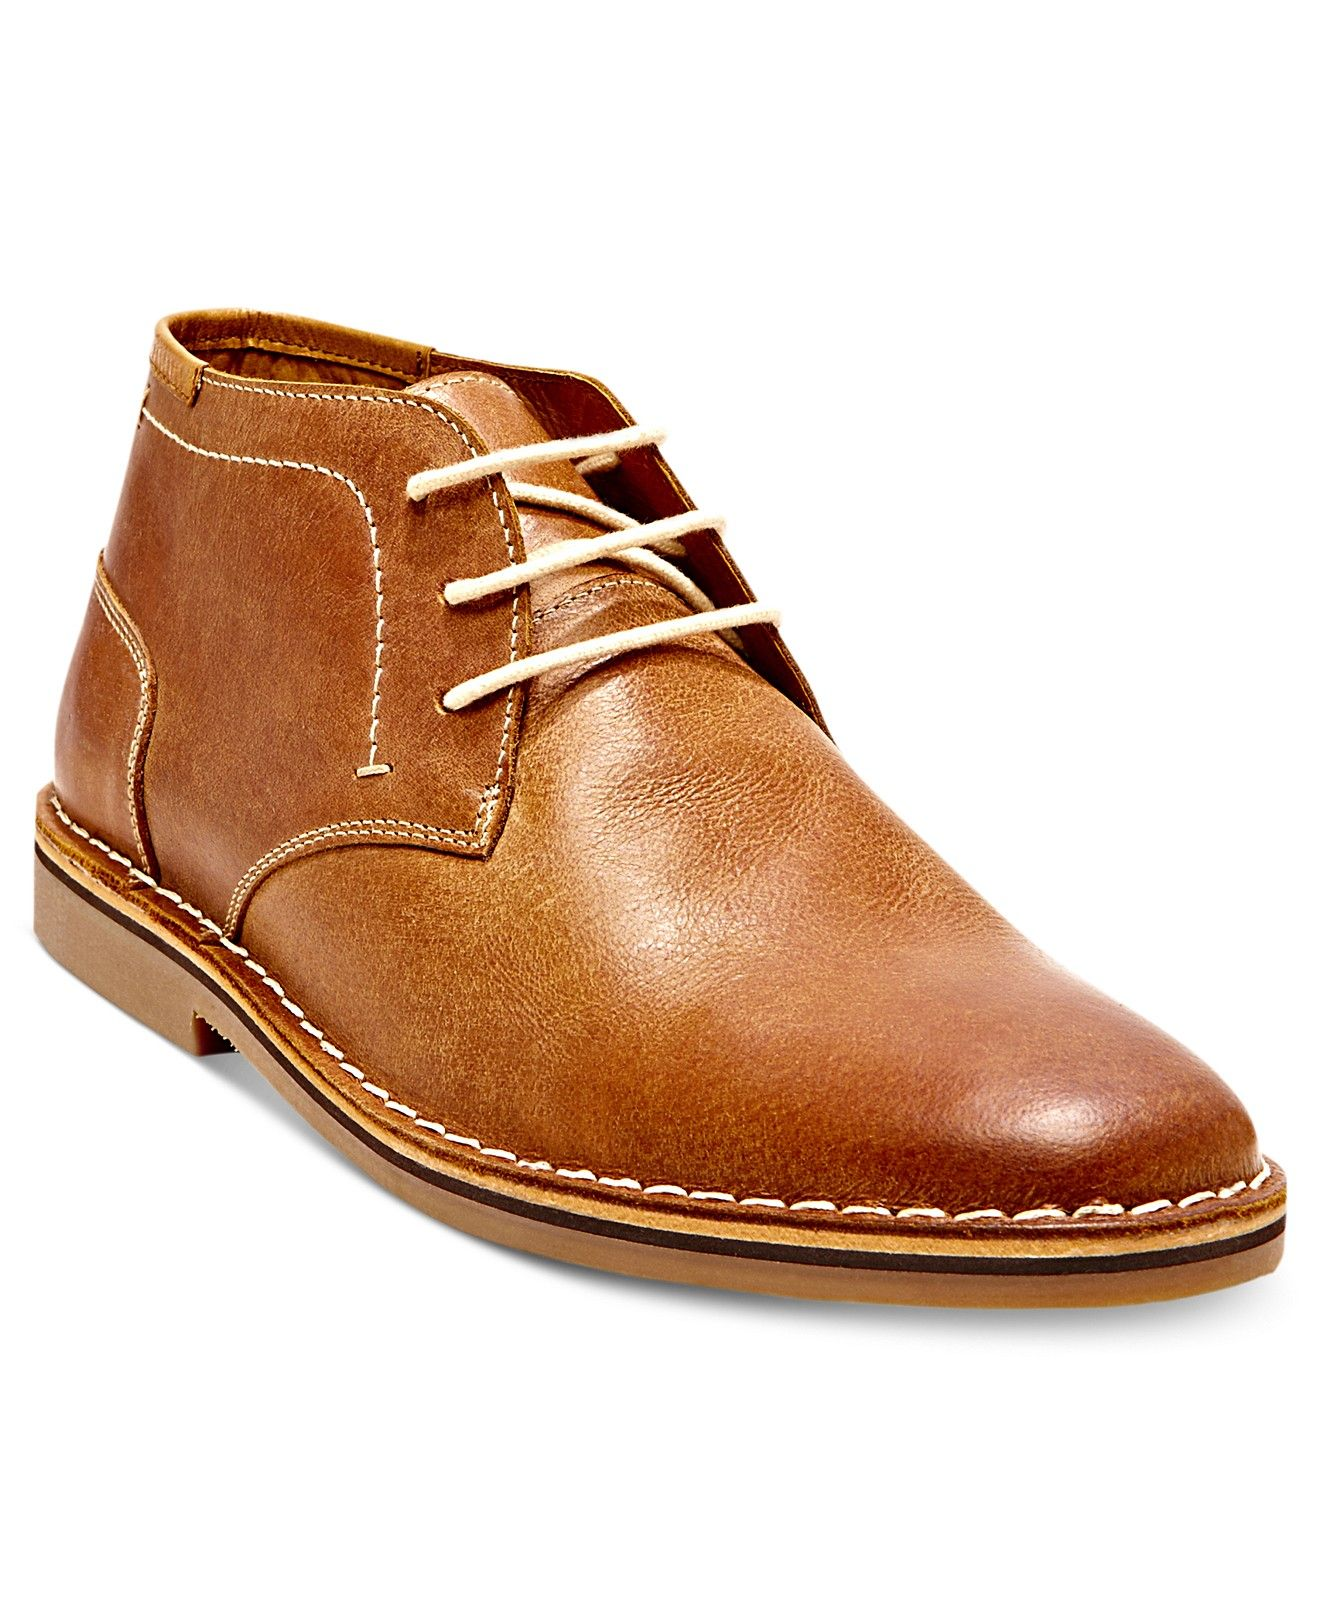 Steve Madden Harken Chukka Boots - All Men's Shoes - Men - Macy's